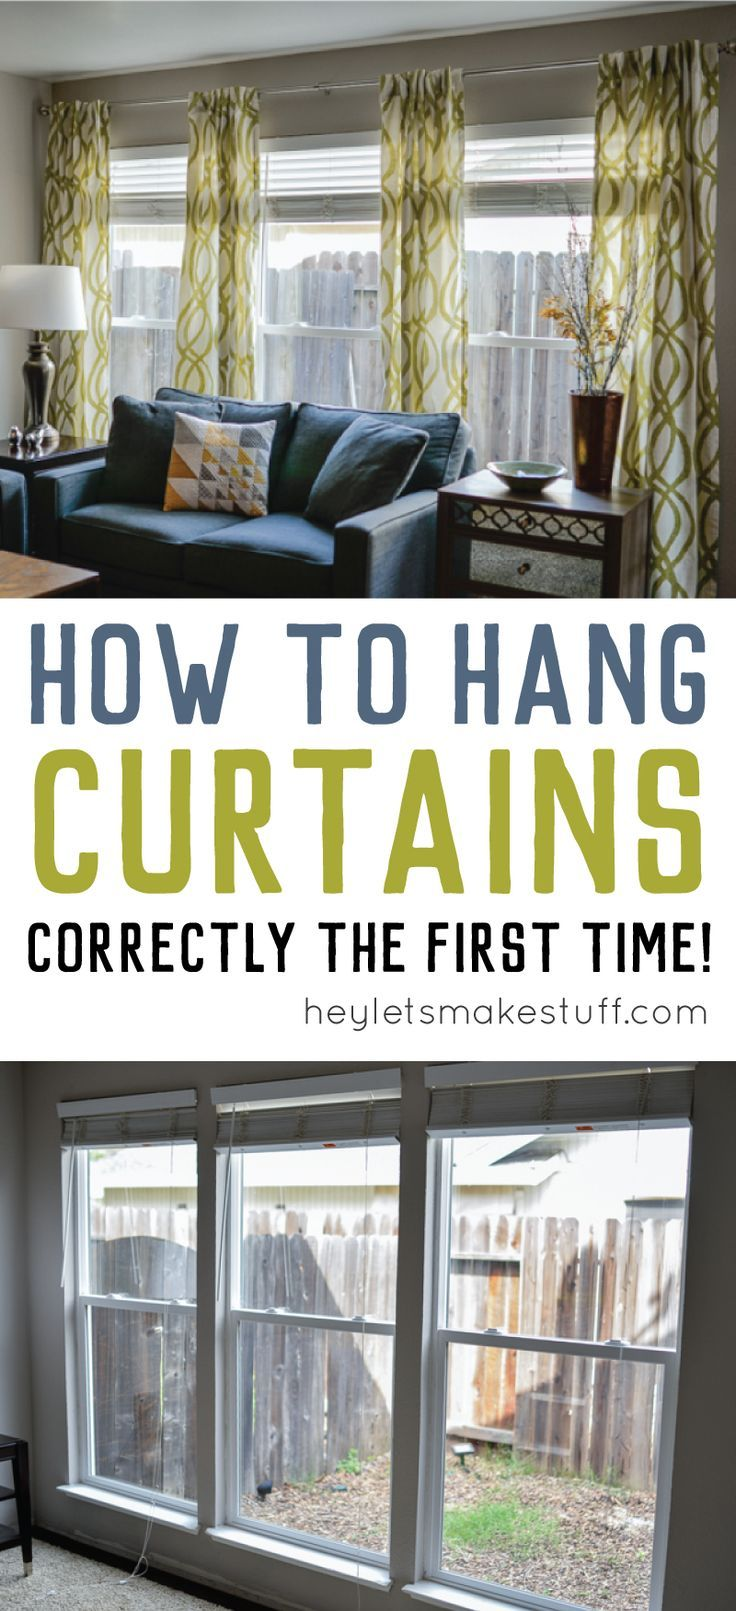 Unique curtain hanging ideas - Hanging Curtains Doesn T Have To Be A Pain Learn How To Hang Curtains